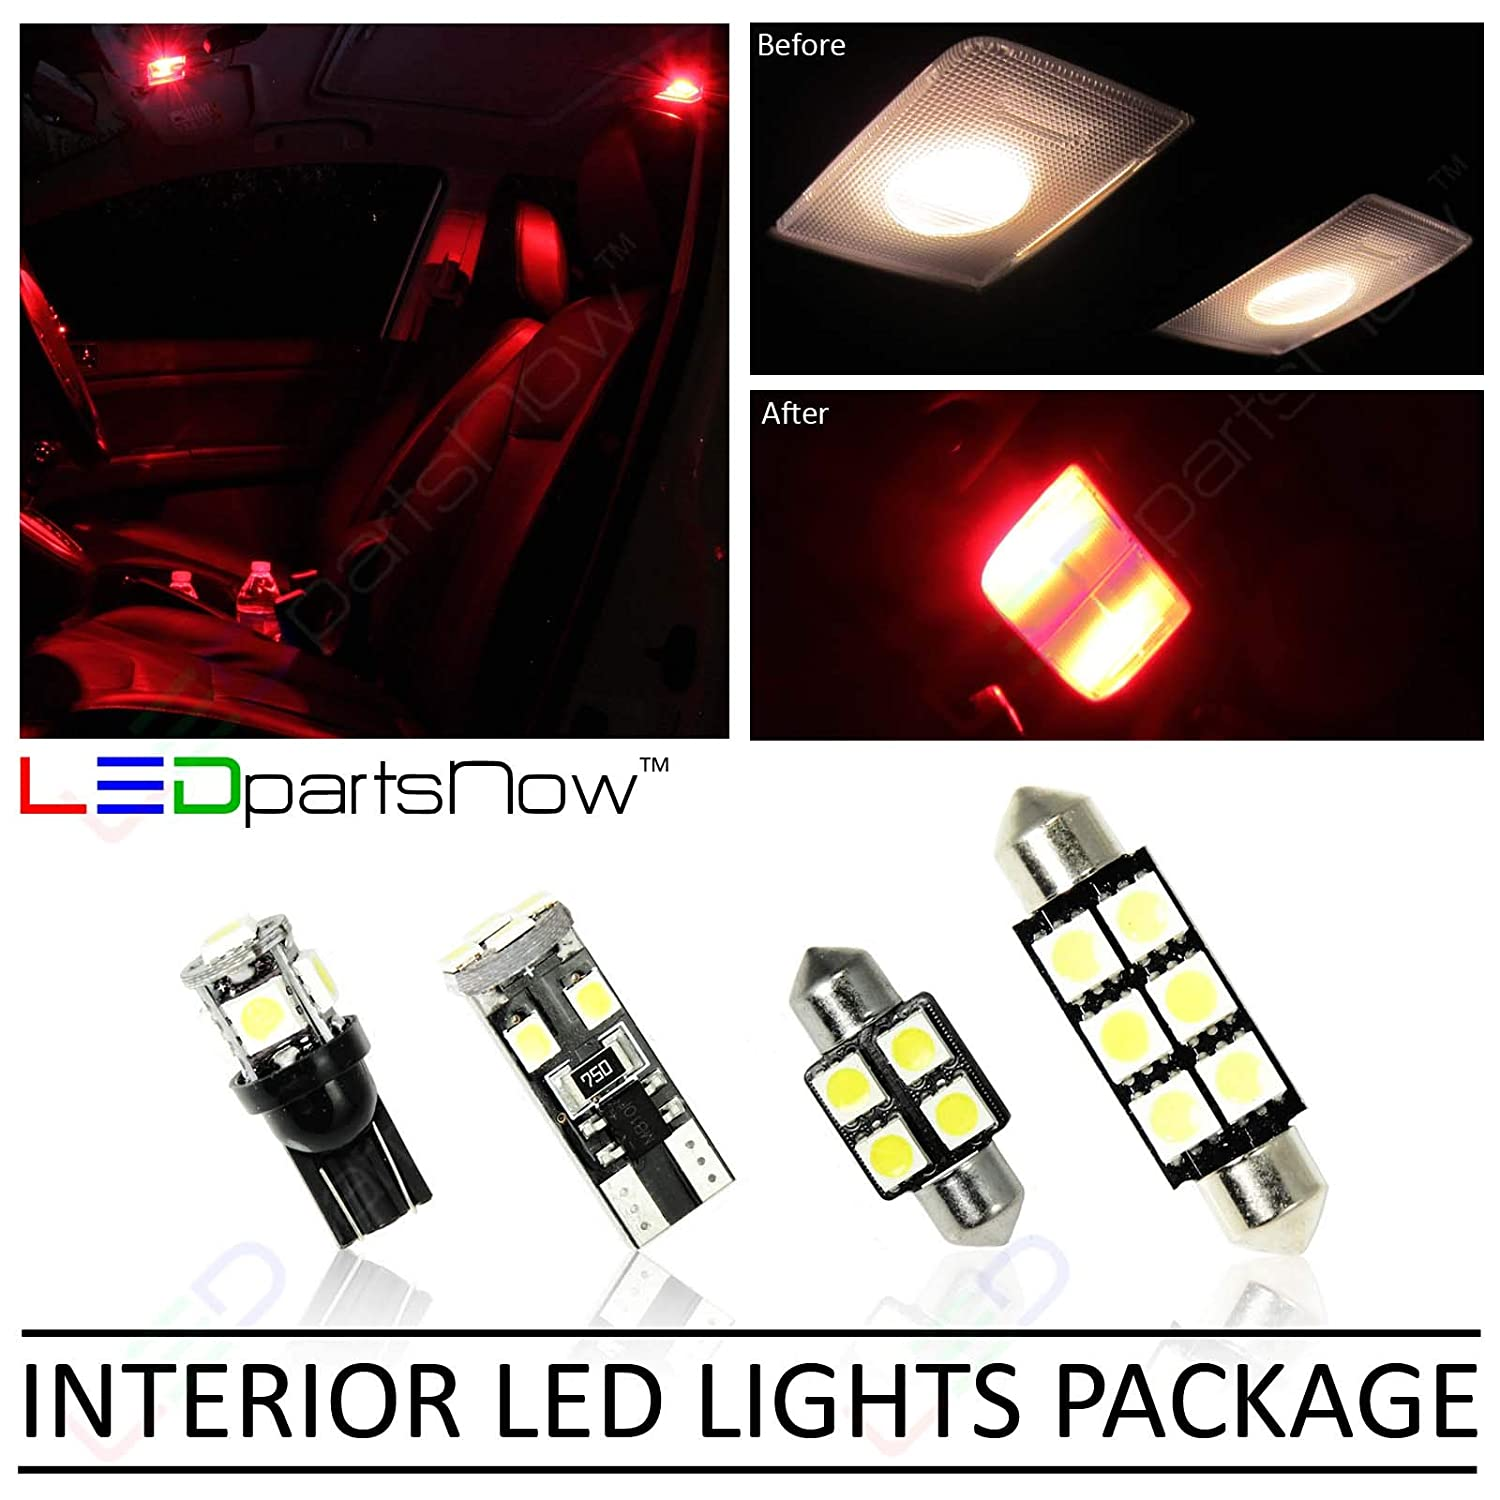 Ledpartsnow Interior Led Lights Replacement For 2011 2014 Dodge Charger Accessories Package Kit 16 Bulbs Red